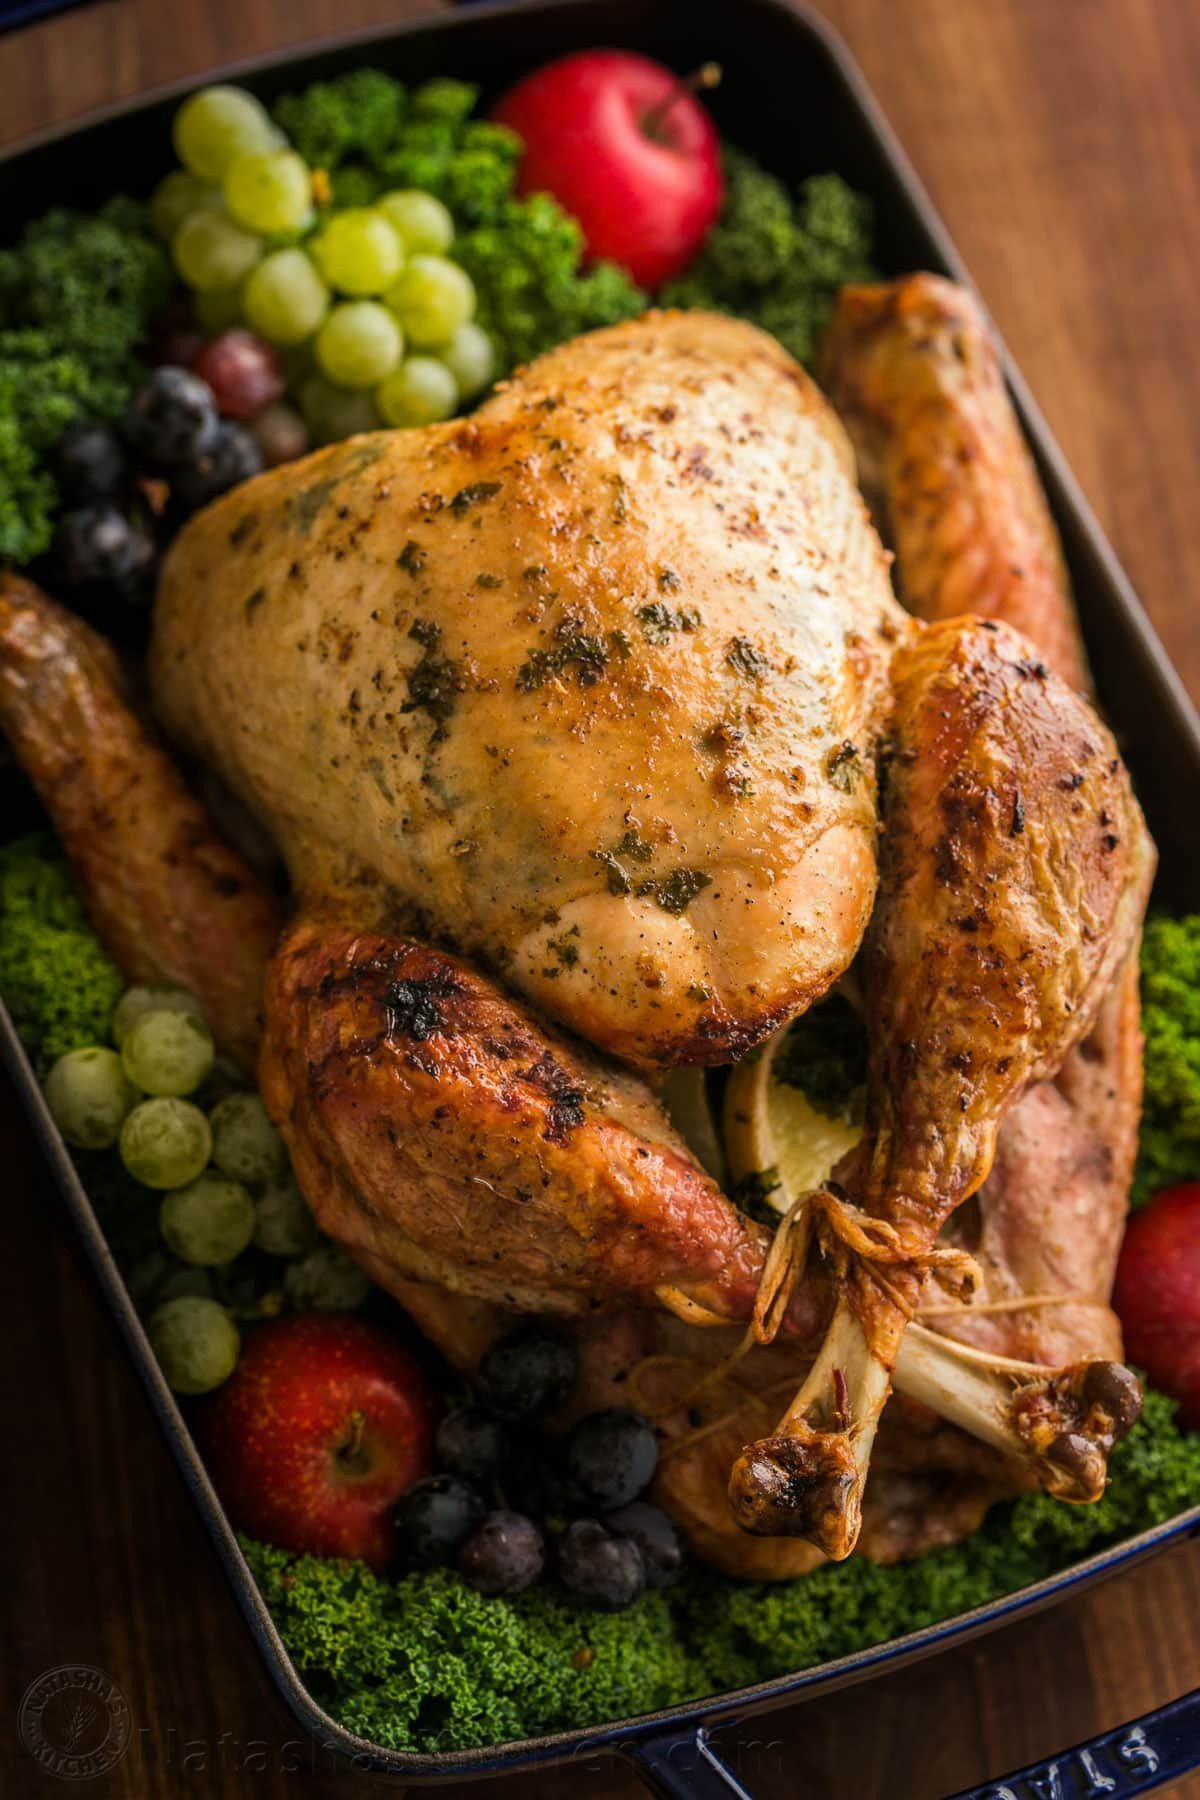 Turkey Recipe Thanksgiving  Thanksgiving Turkey Recipe VIDEO NatashasKitchen